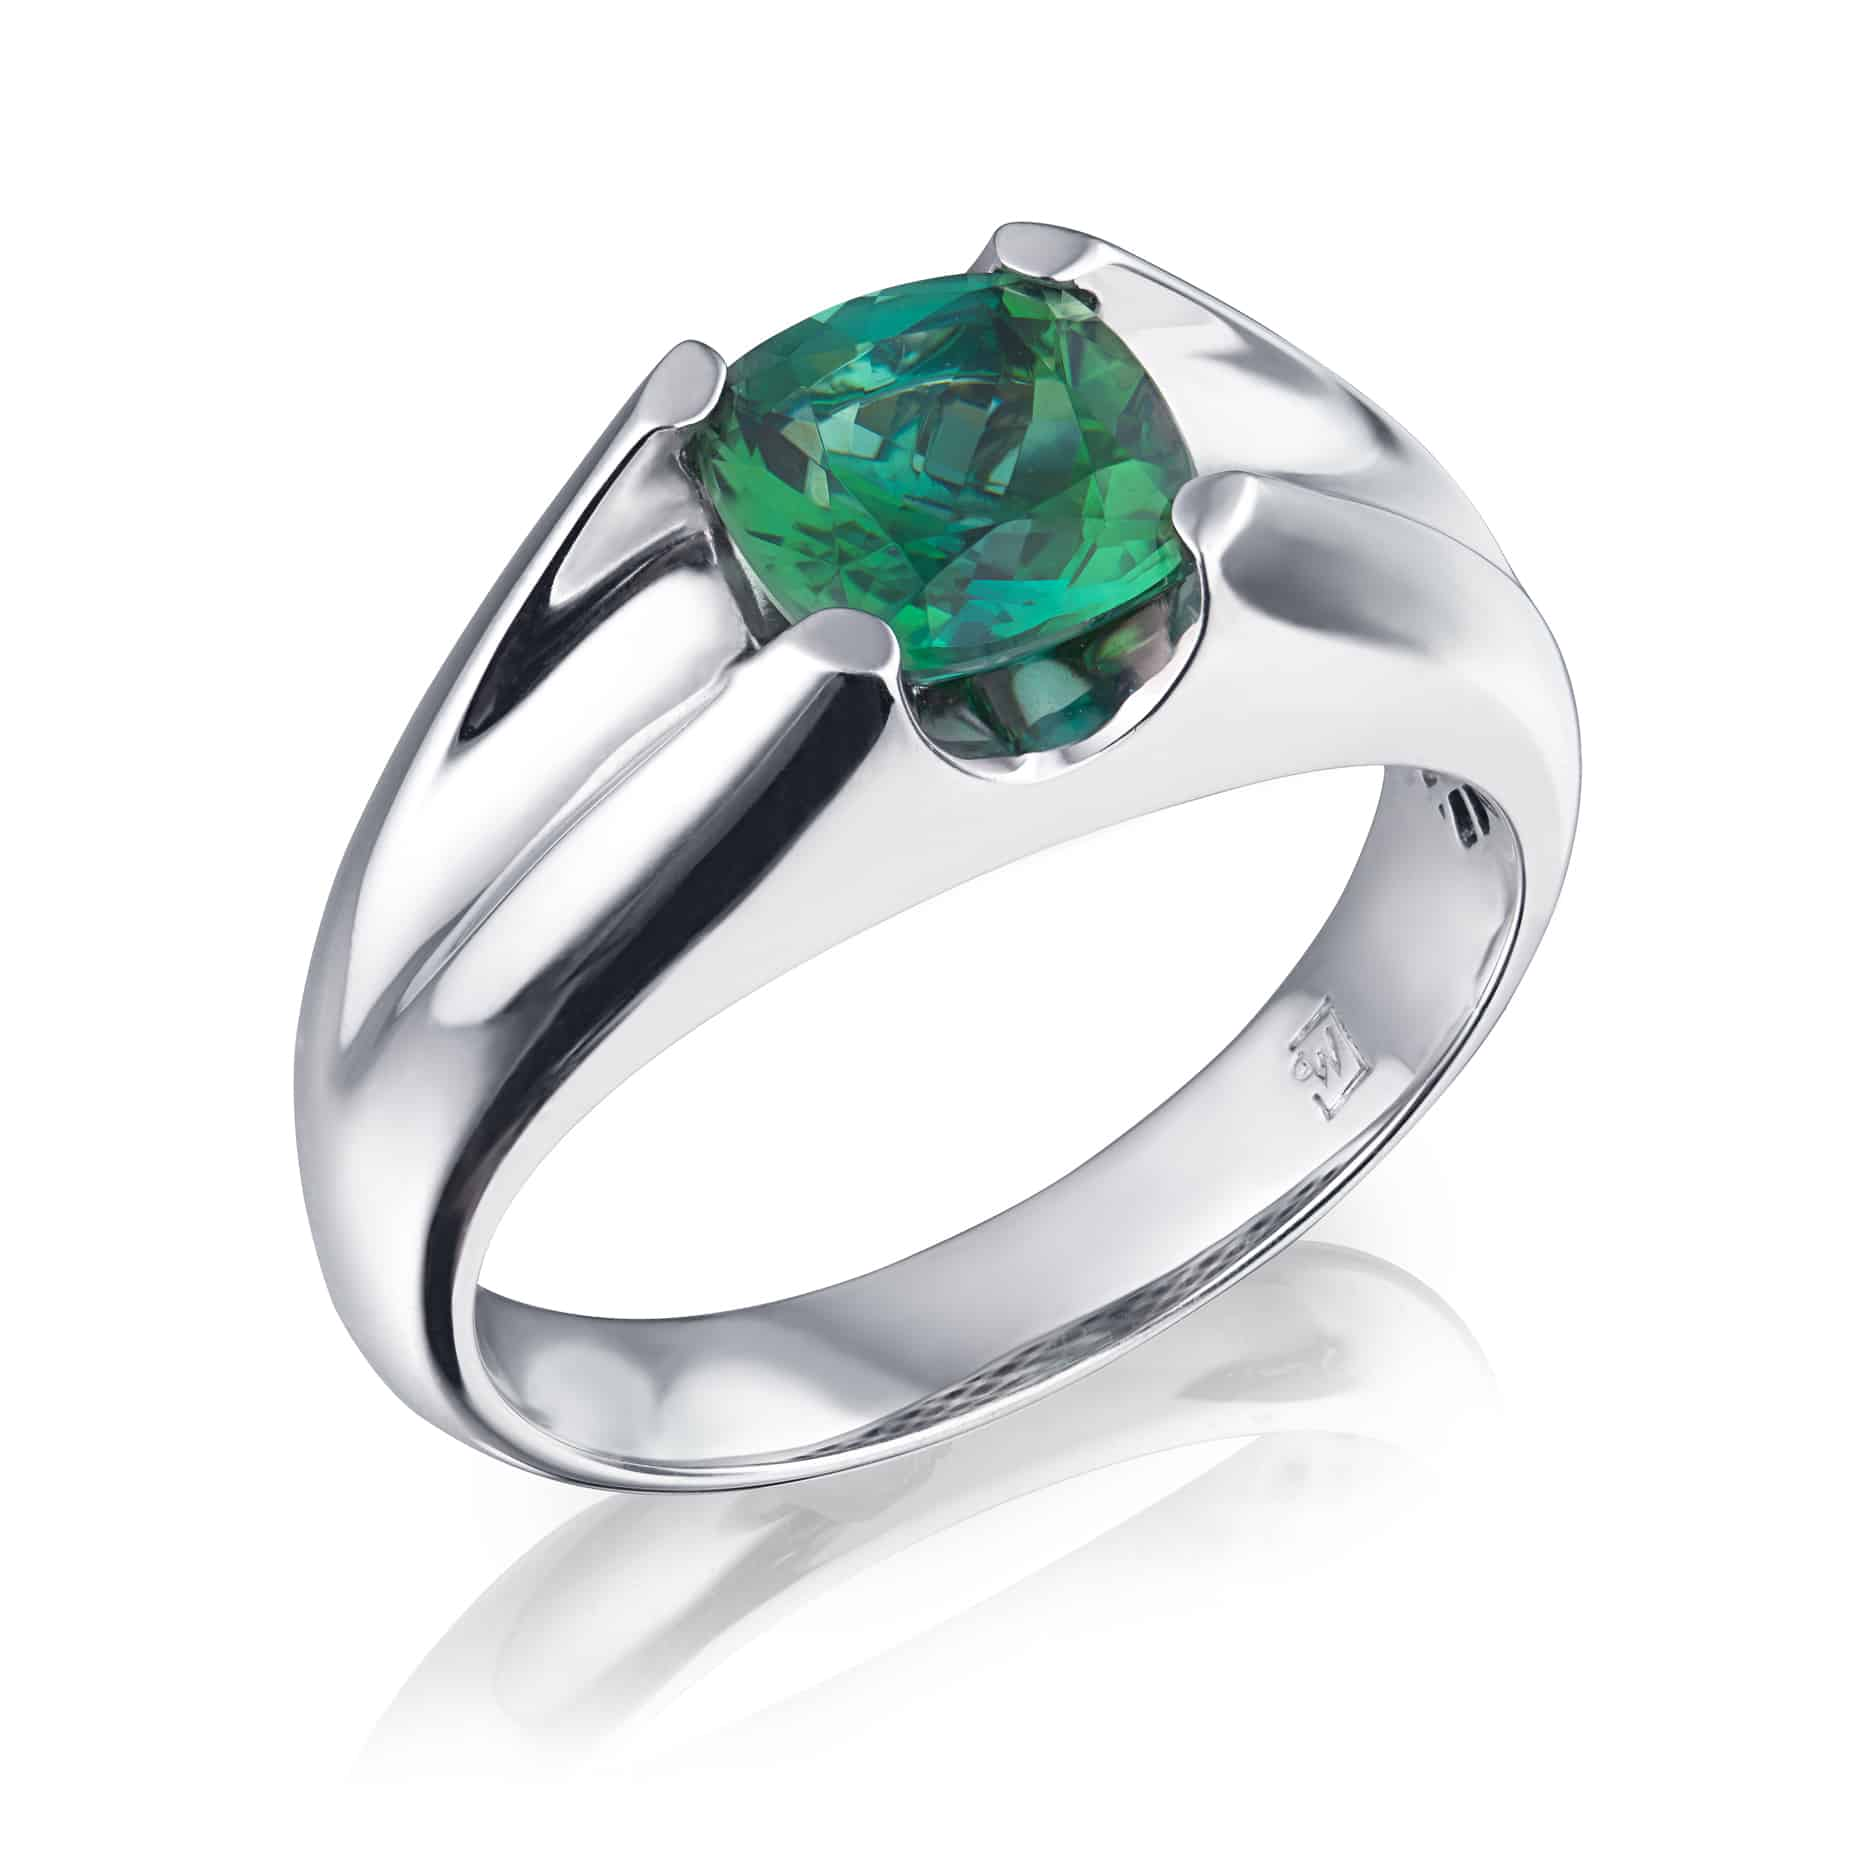 Cushion Green Tourmaline Ring